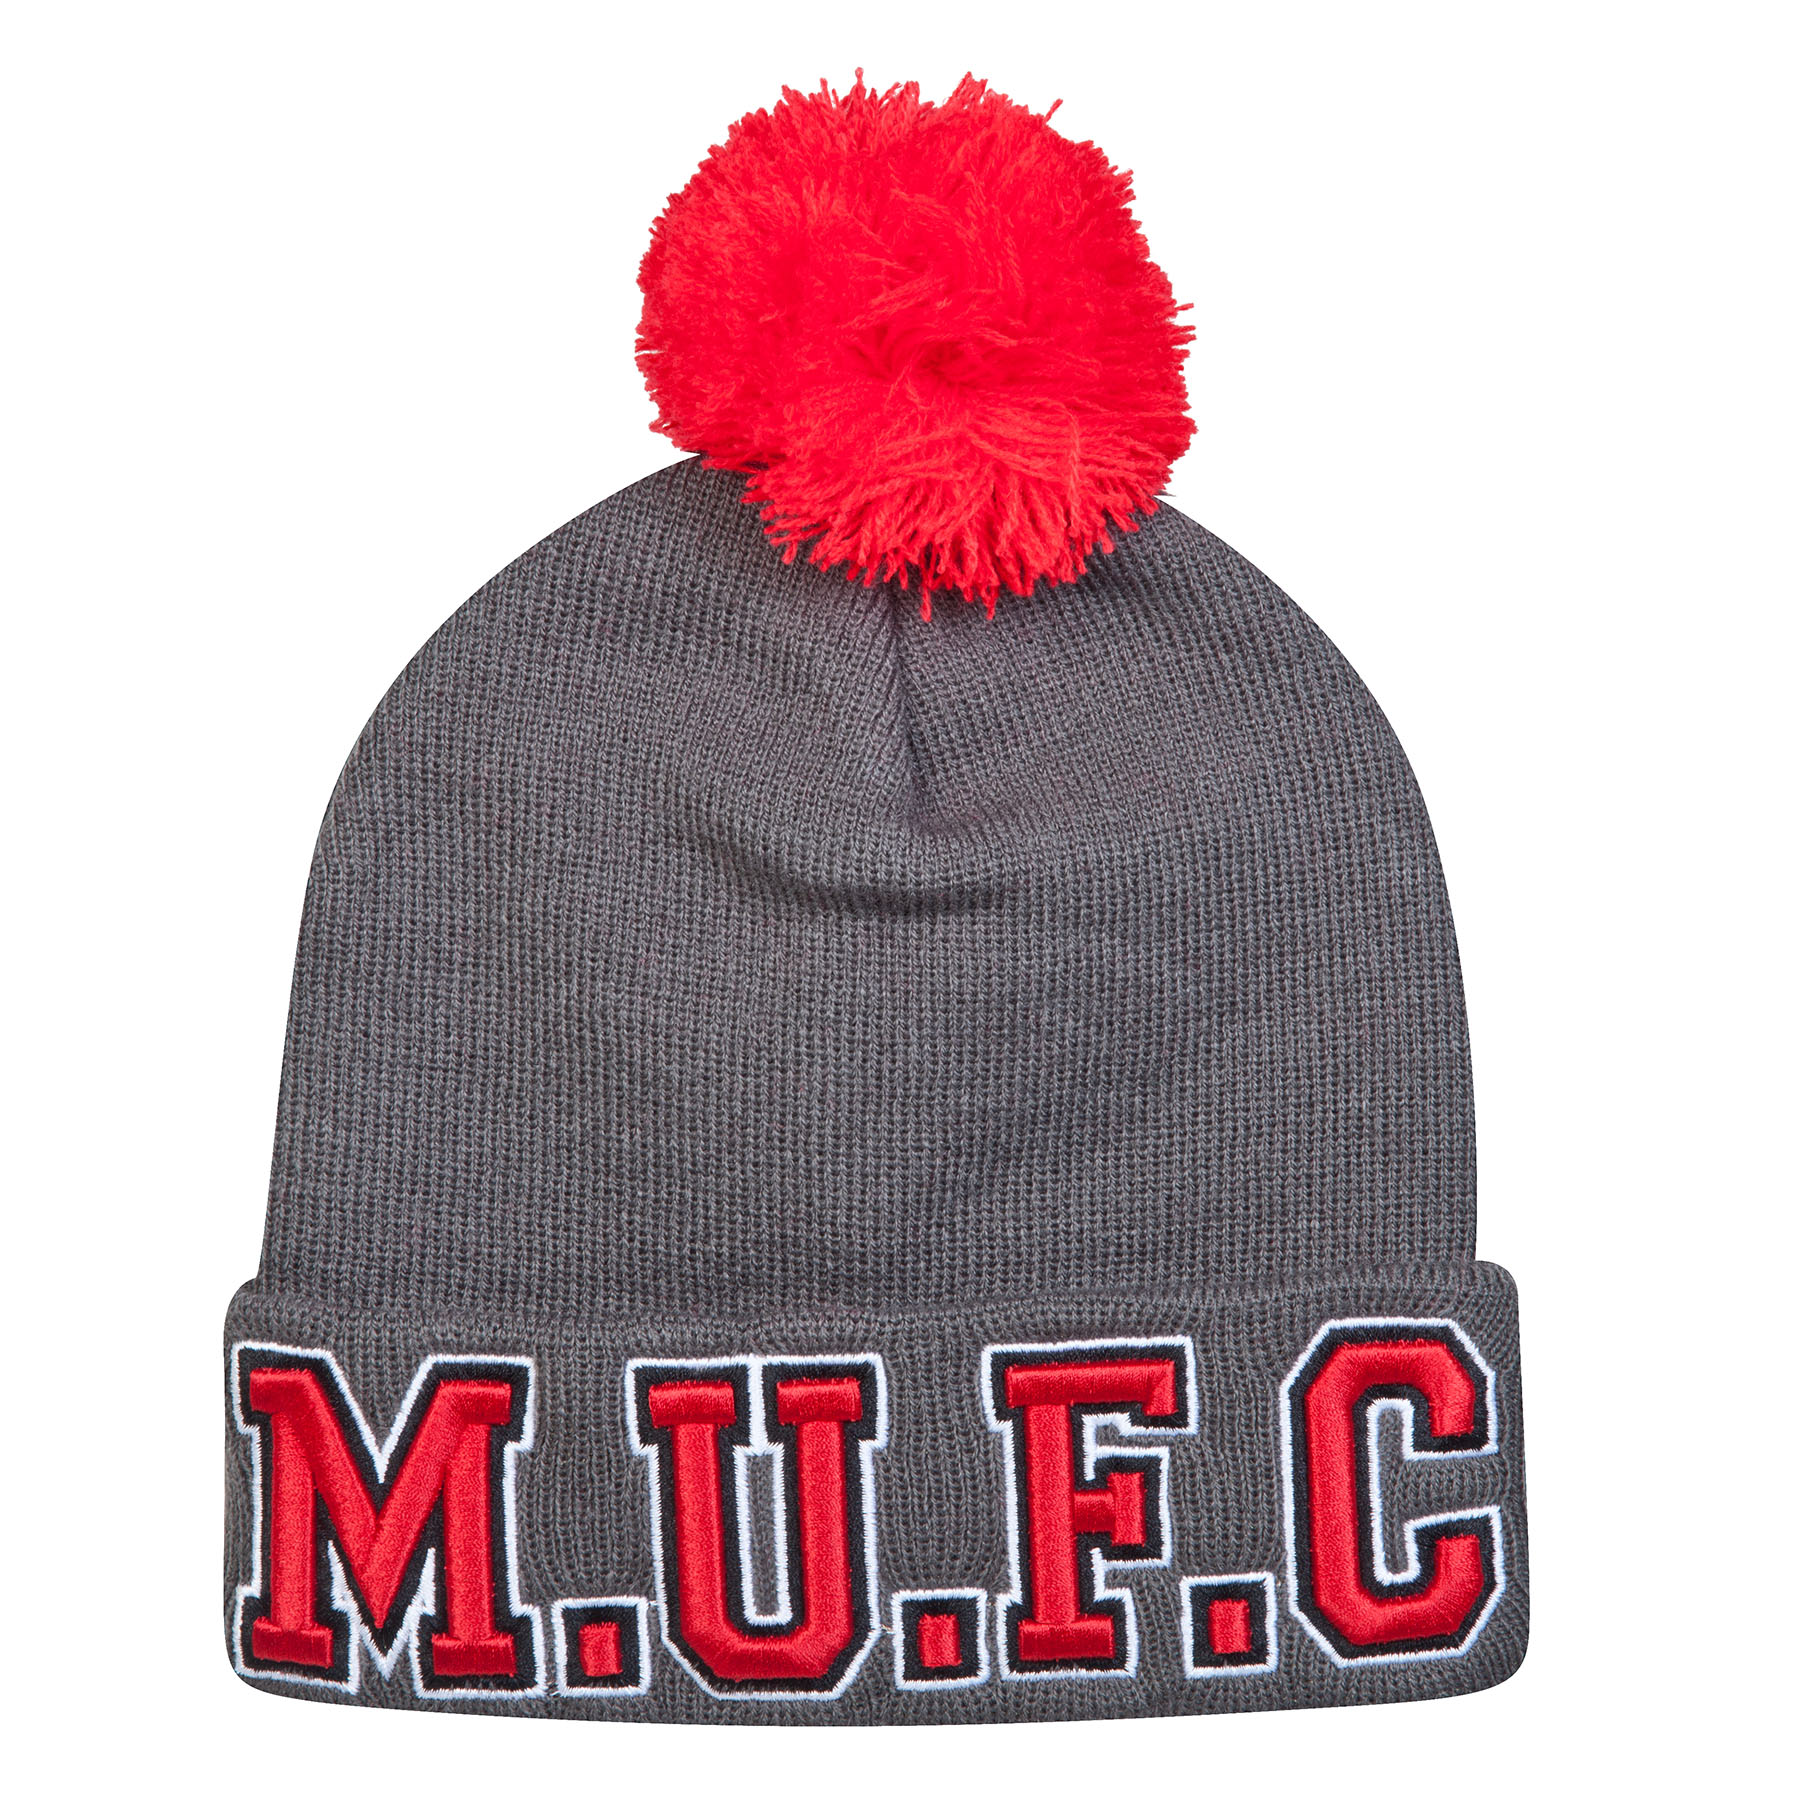 Manchester United Half Time Beanie Hat - Grey - Kids